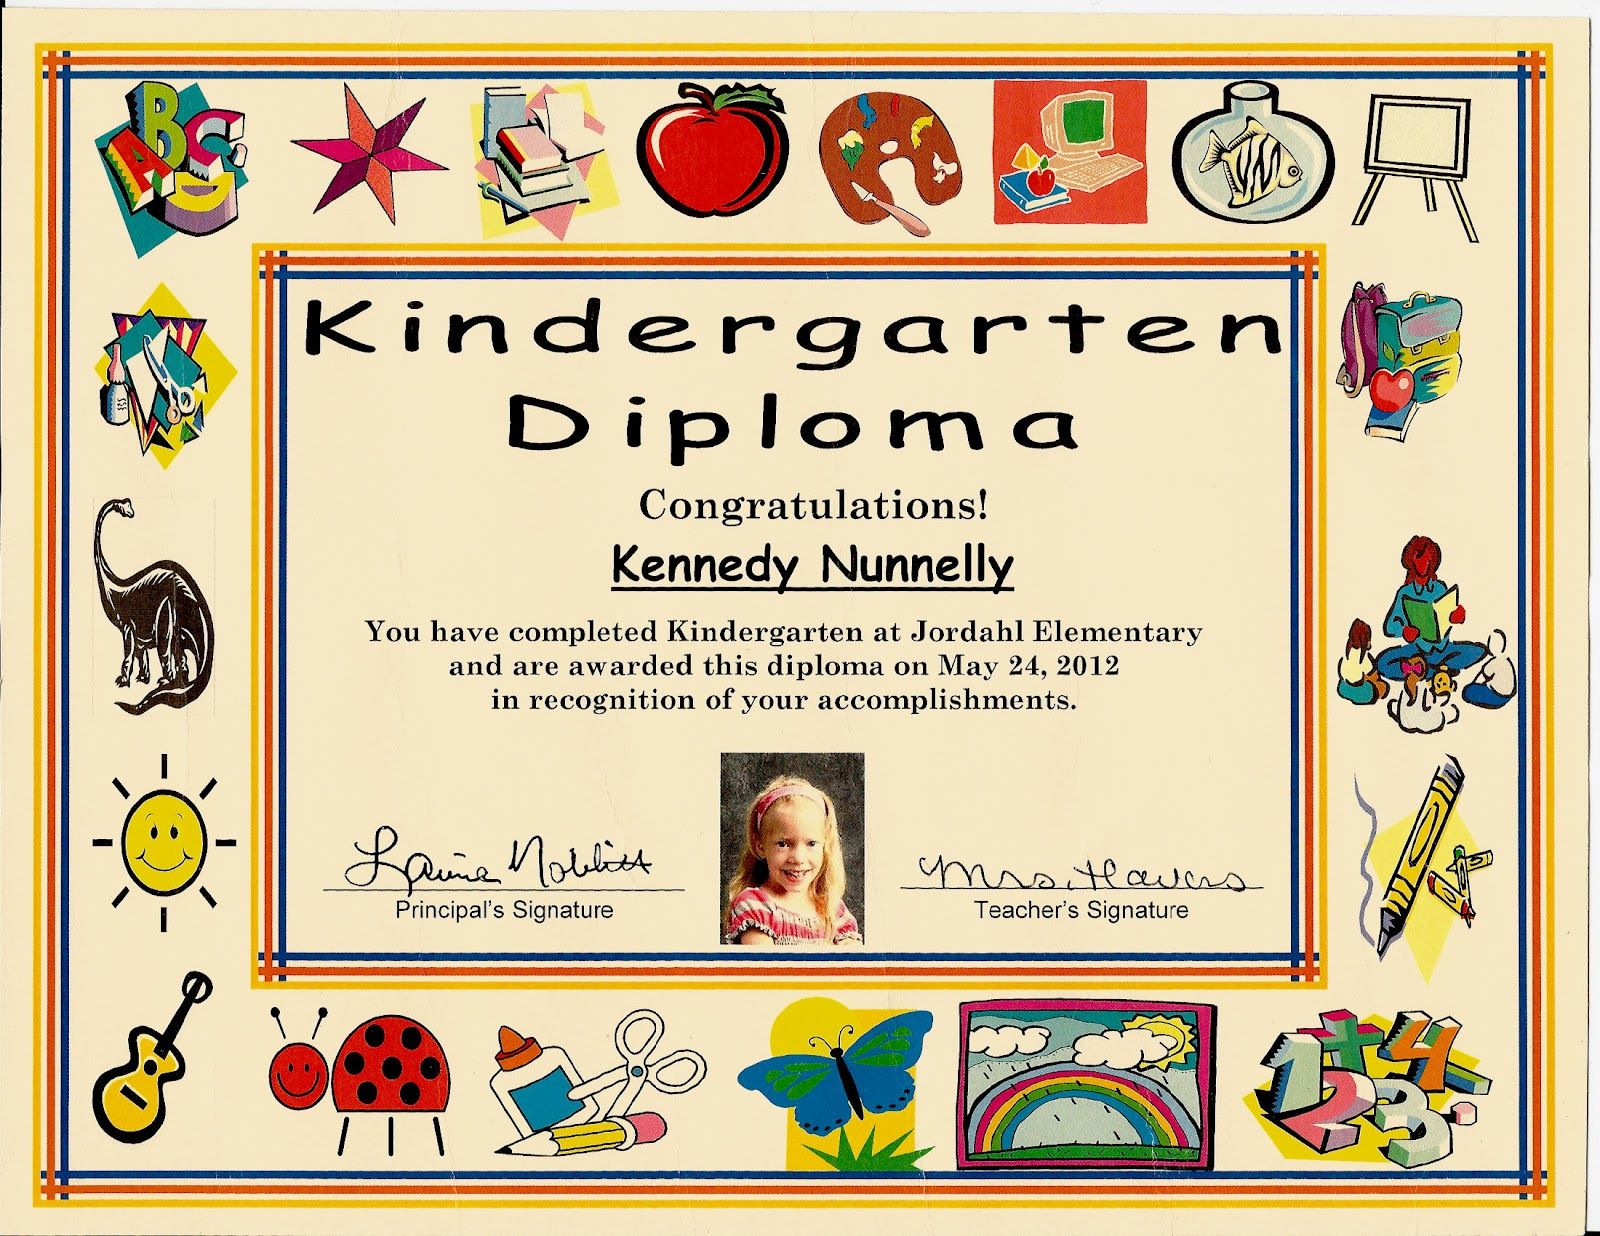 Graduation certificates for preschoolers hayitelcuervoazul graduation certificates for preschoolers yelopaper Gallery